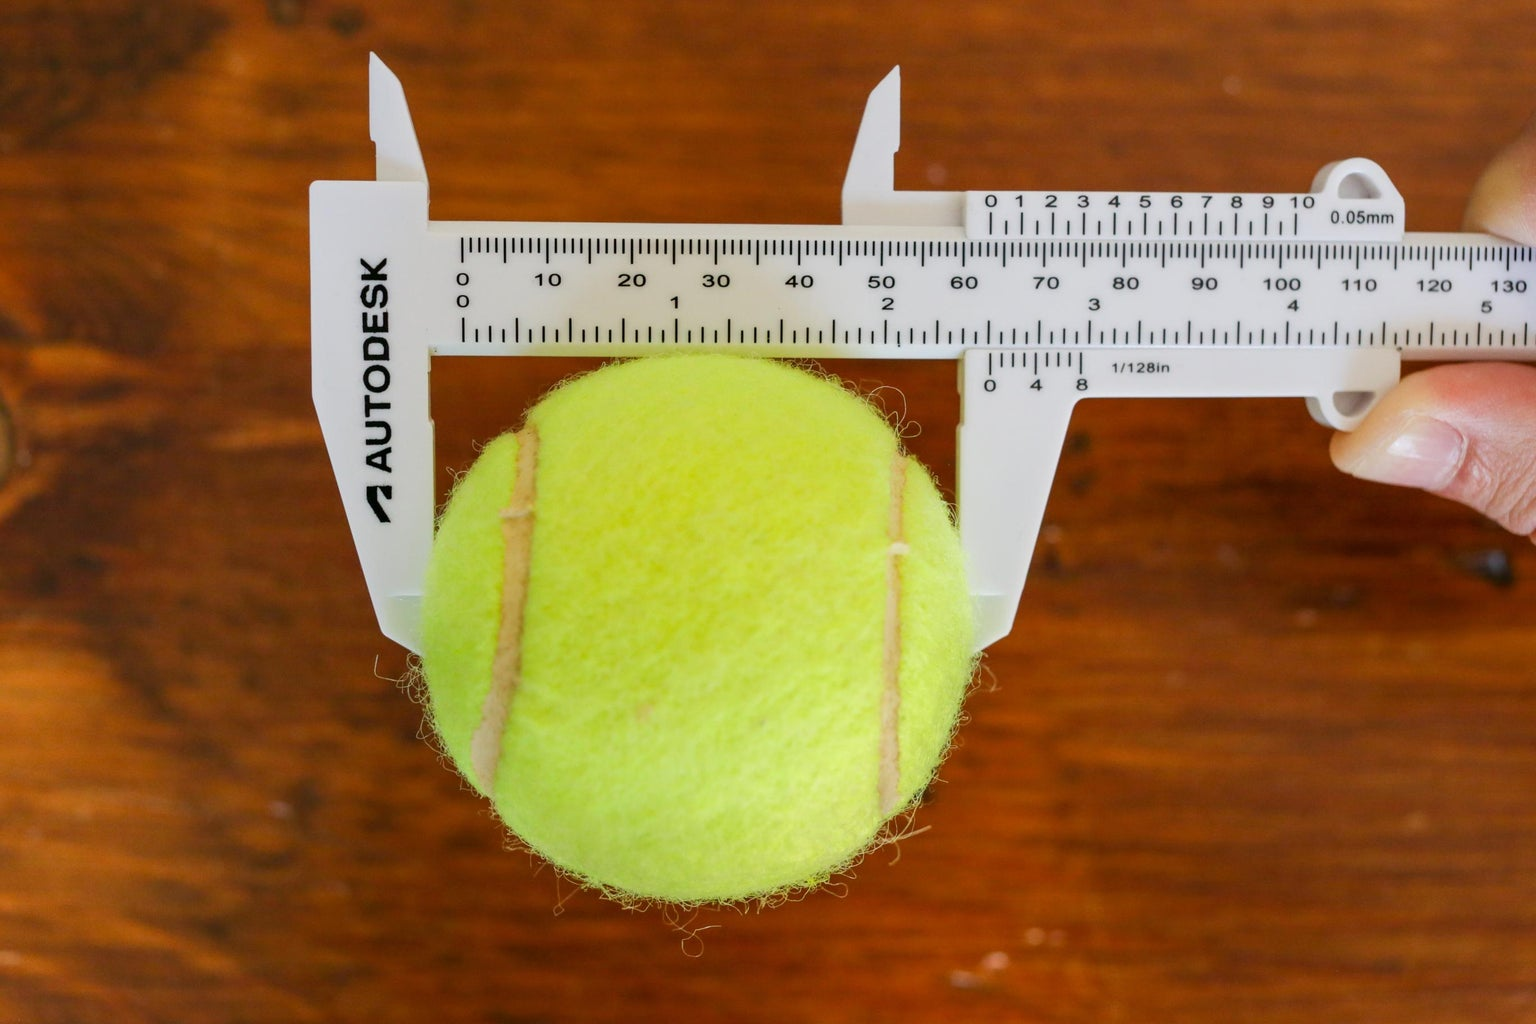 Measuring Outer Dimensions of a Round Object